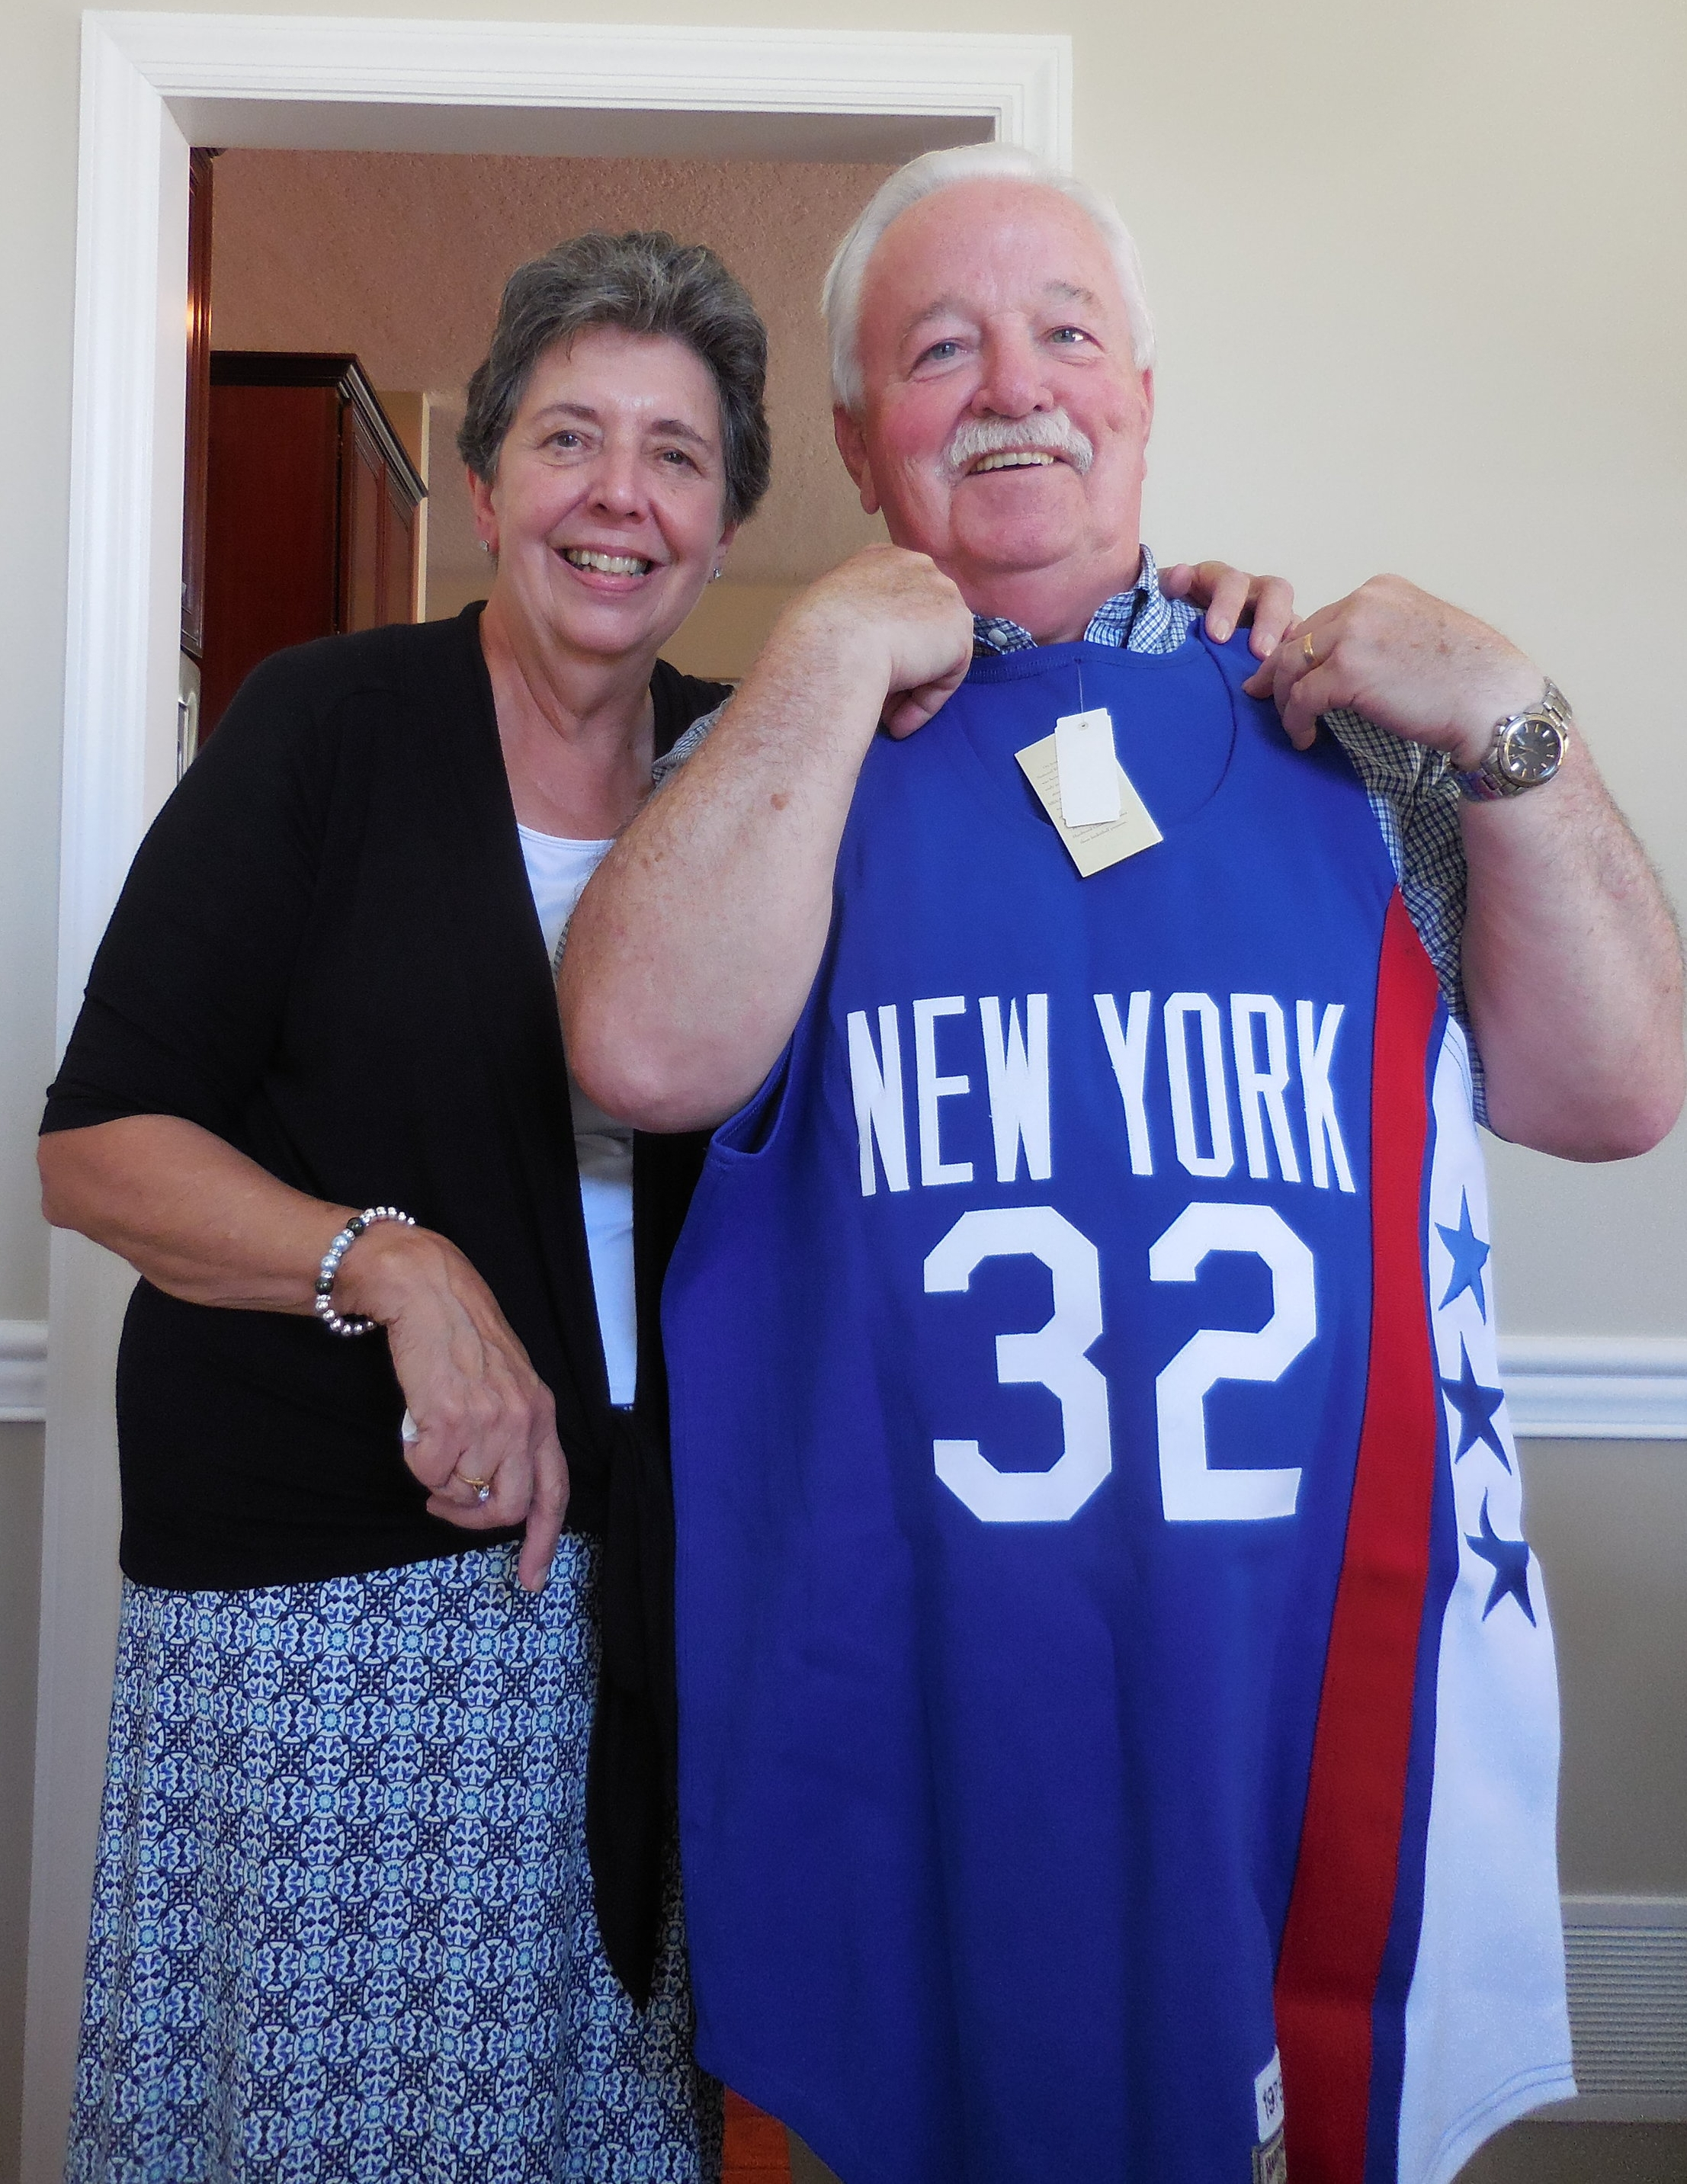 Kathie and Jim O'Brien with his beloved Dr. J jersey.